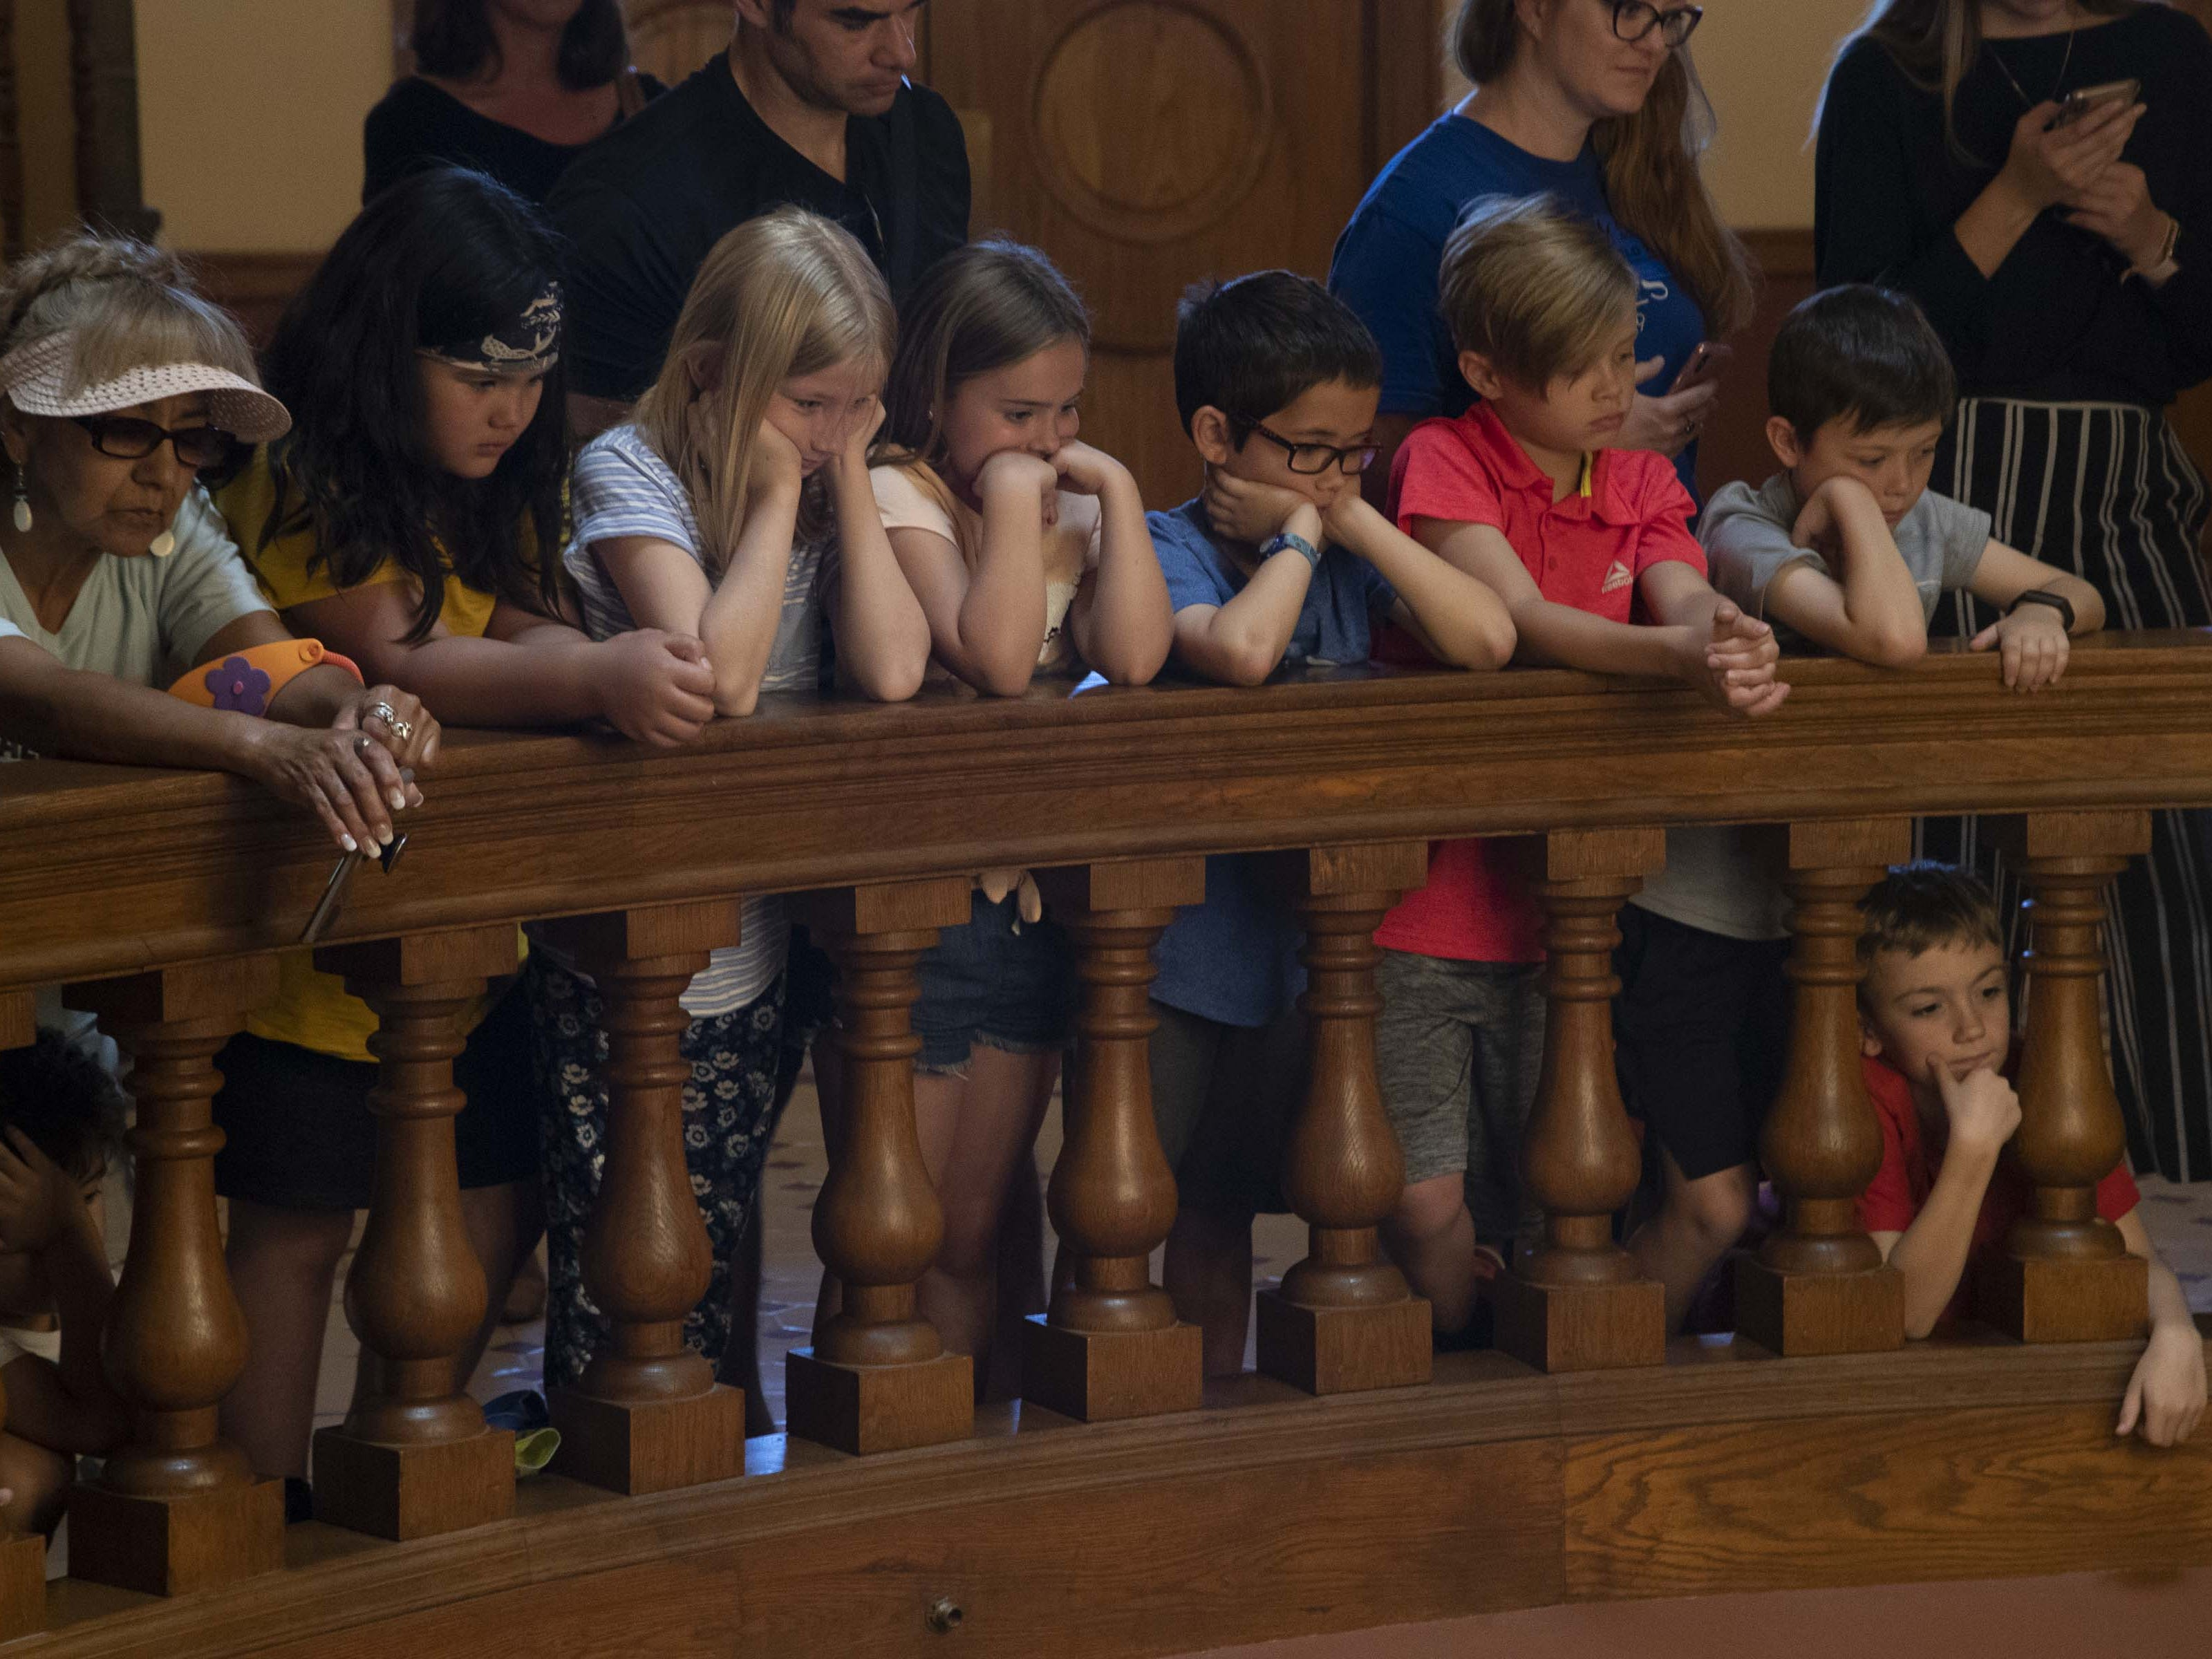 Spectators watch while Gov. Doug Ducey signs a bill that prohibits texting while driving on April 22, 2019.